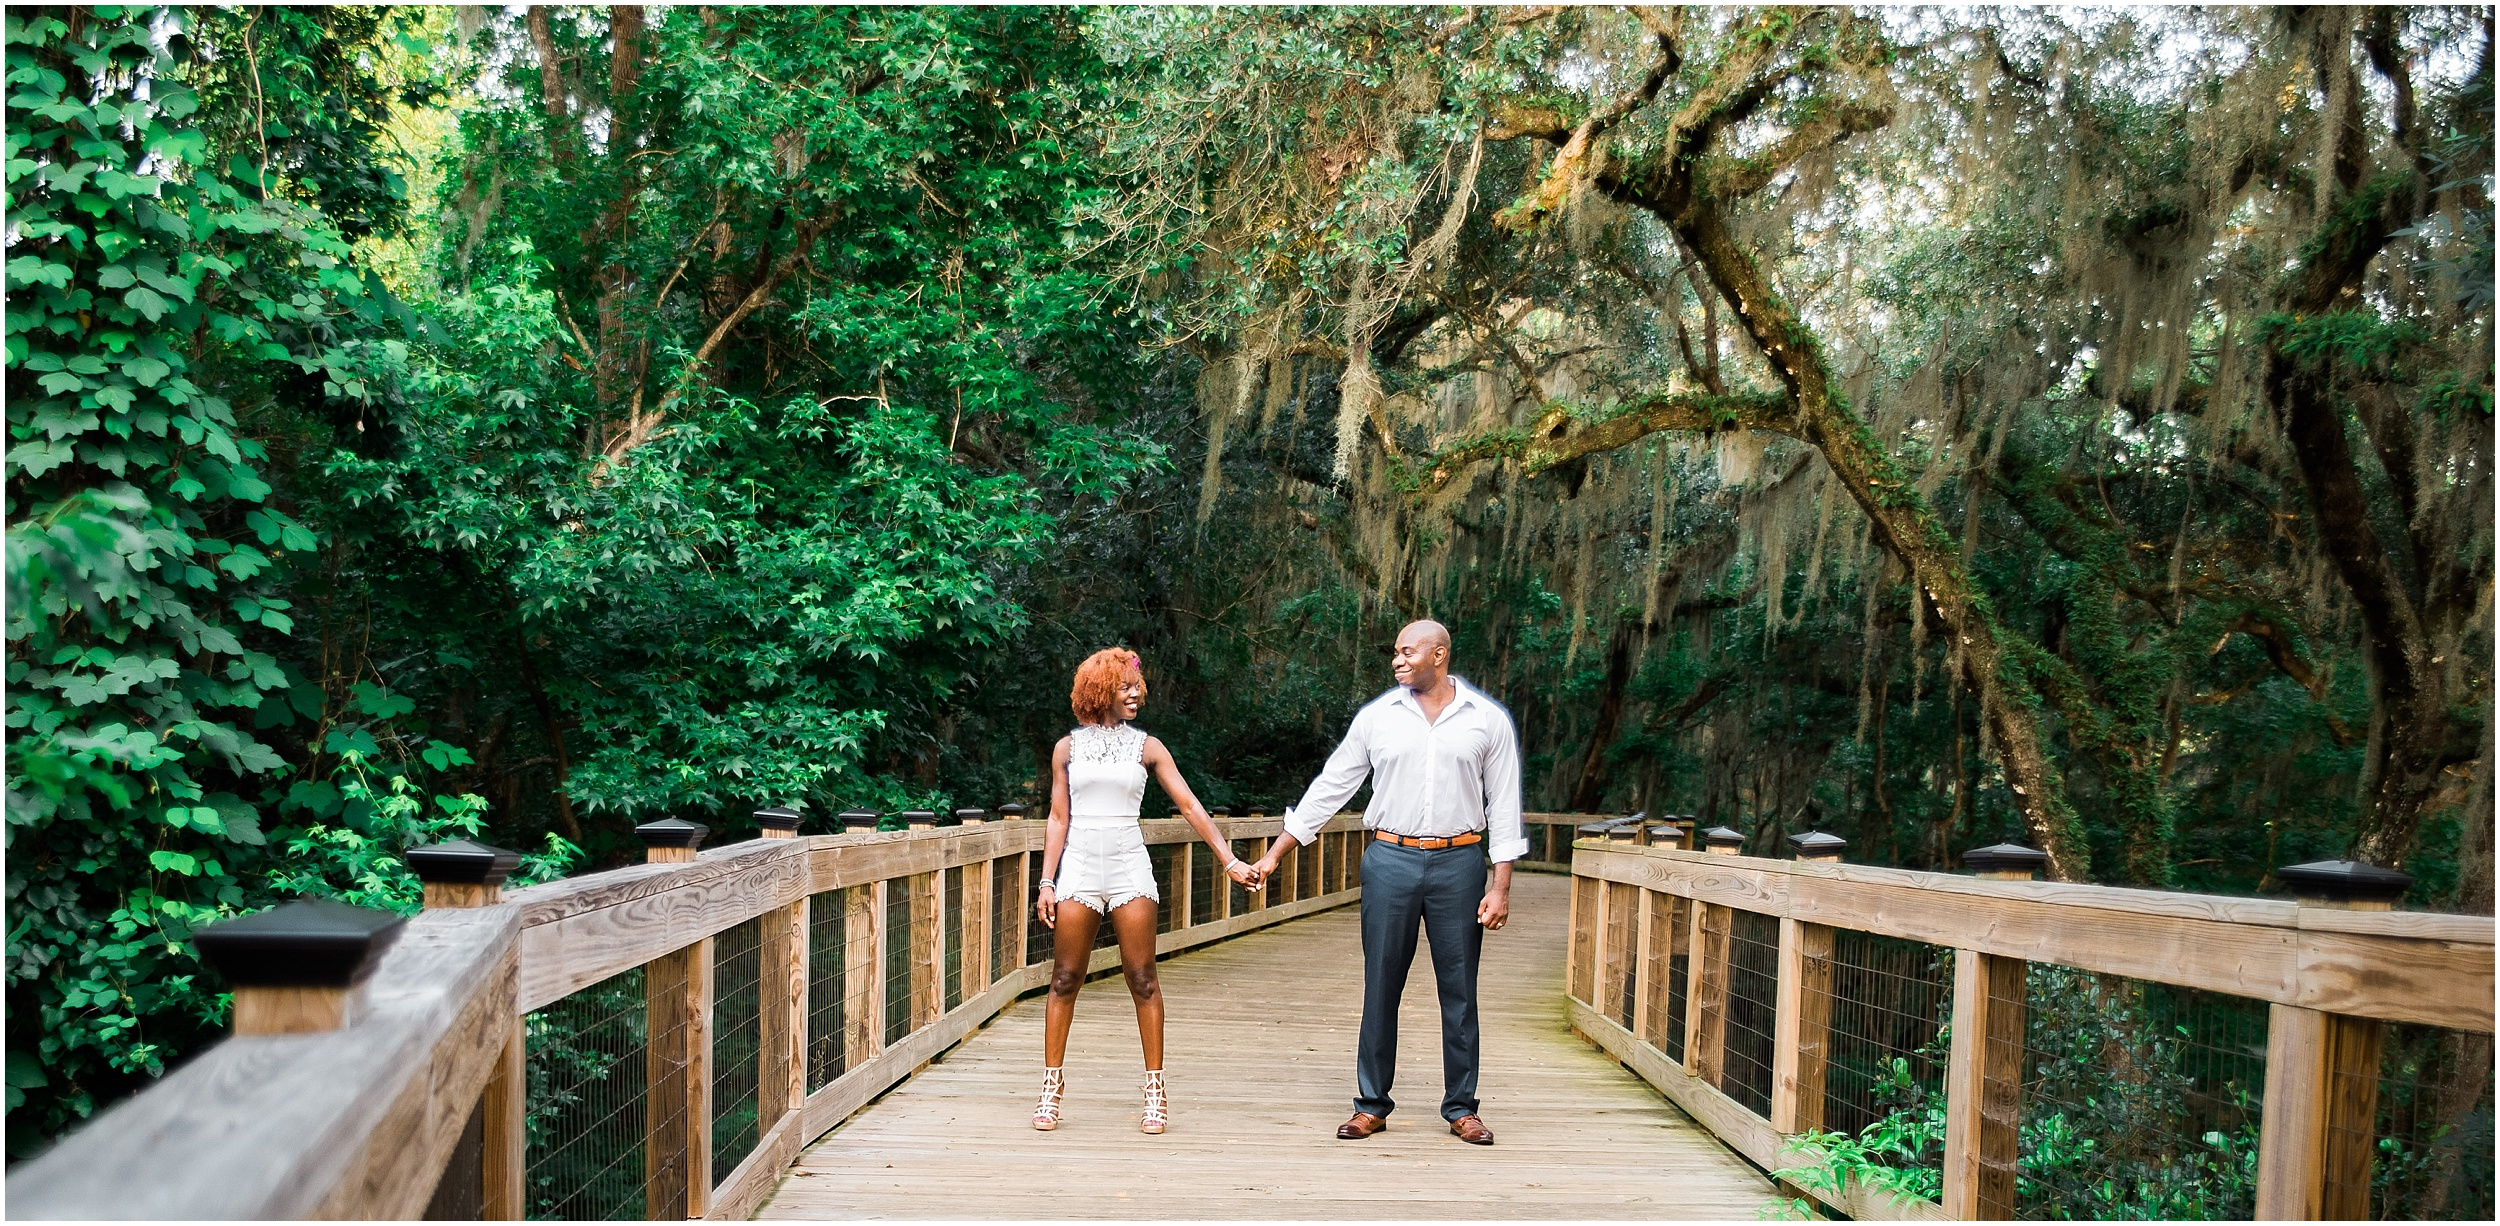 Kacy & Rolanda Vow Renewal at J.R Alford Greenway, Tallahassee FL_0013.jpg